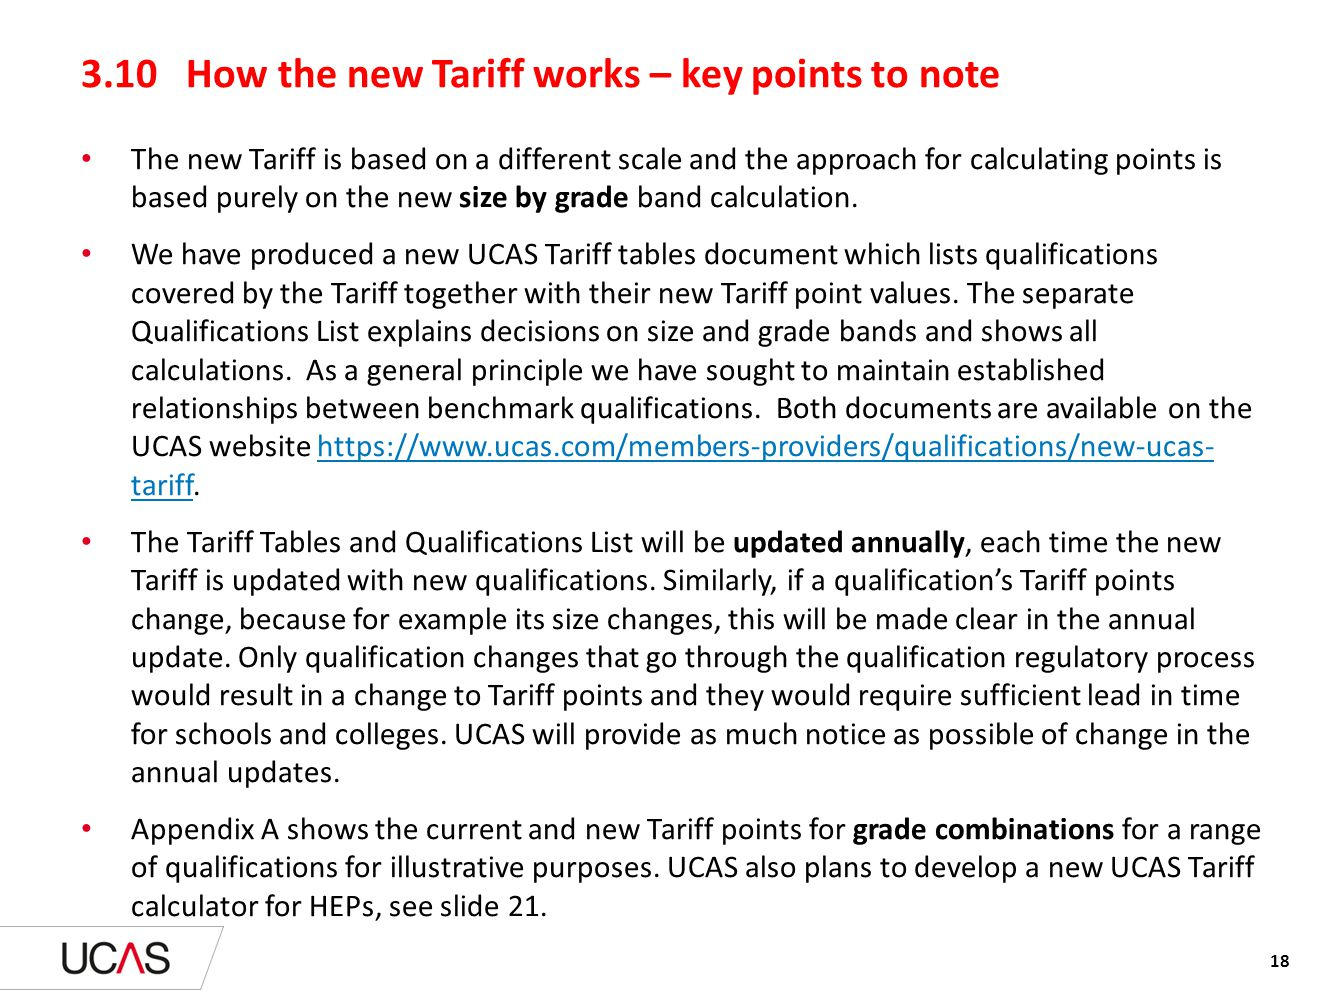 3.10 How the new Tariff works – key points to note